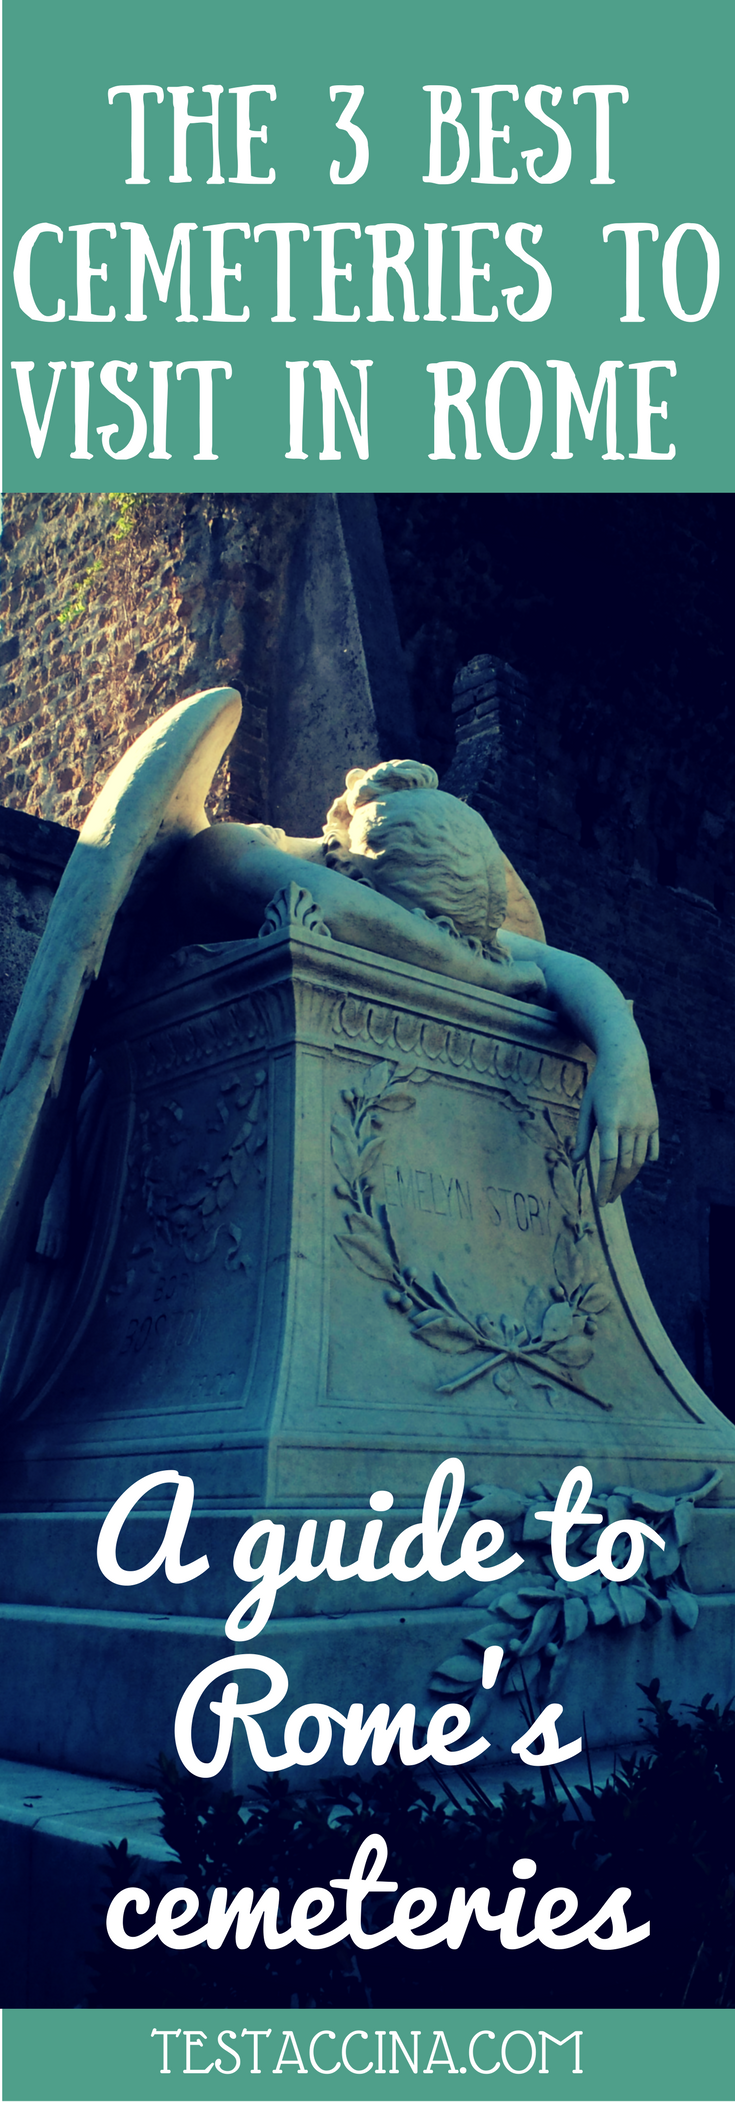 This guide to the most interesting of Rome's Cemeteries introduces Verano Cemetery, the Non-Catholic Cemetery and the Commonwealth Cemetery, Rome.